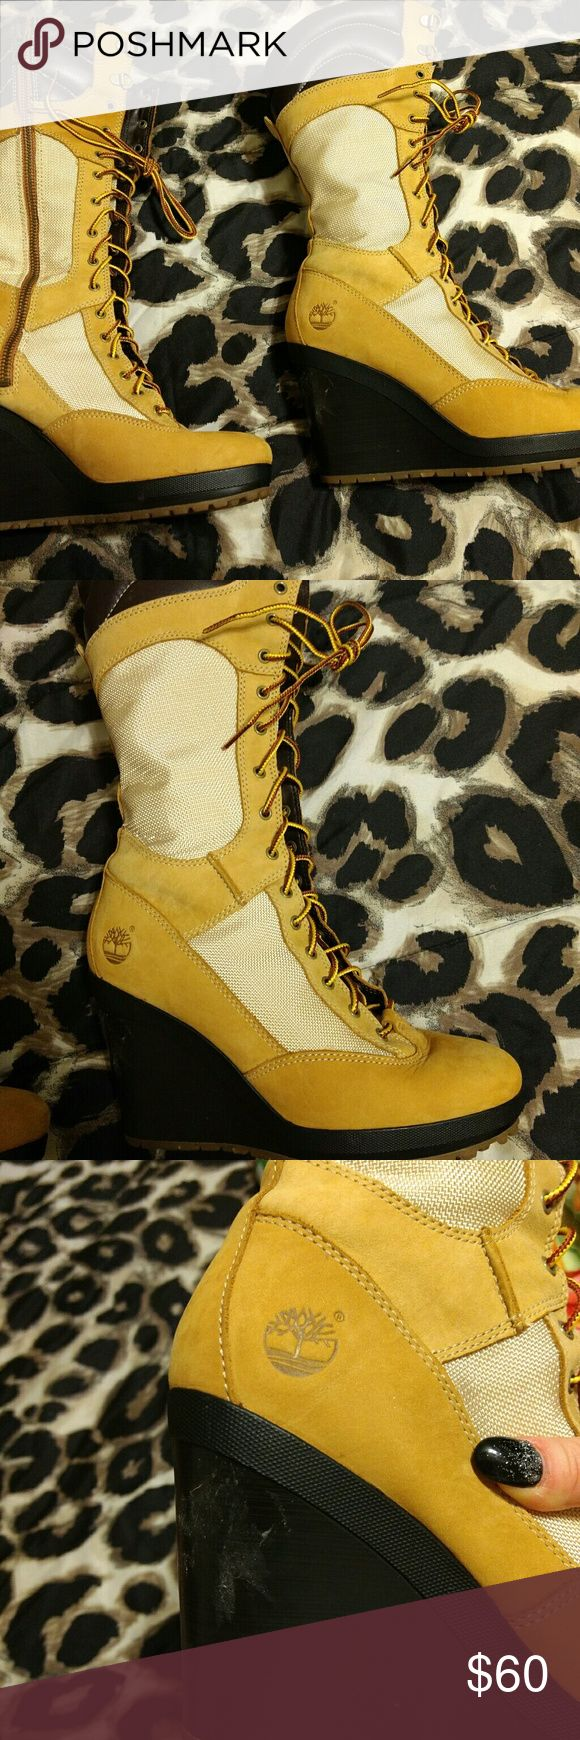 "Knee high timberland boots Only worn once 4"" wedge heel ..Small smudge where the price tag was on the heel seem in 3rd pic zipper on side of each boot Timberland Shoes Lace Up Boots"